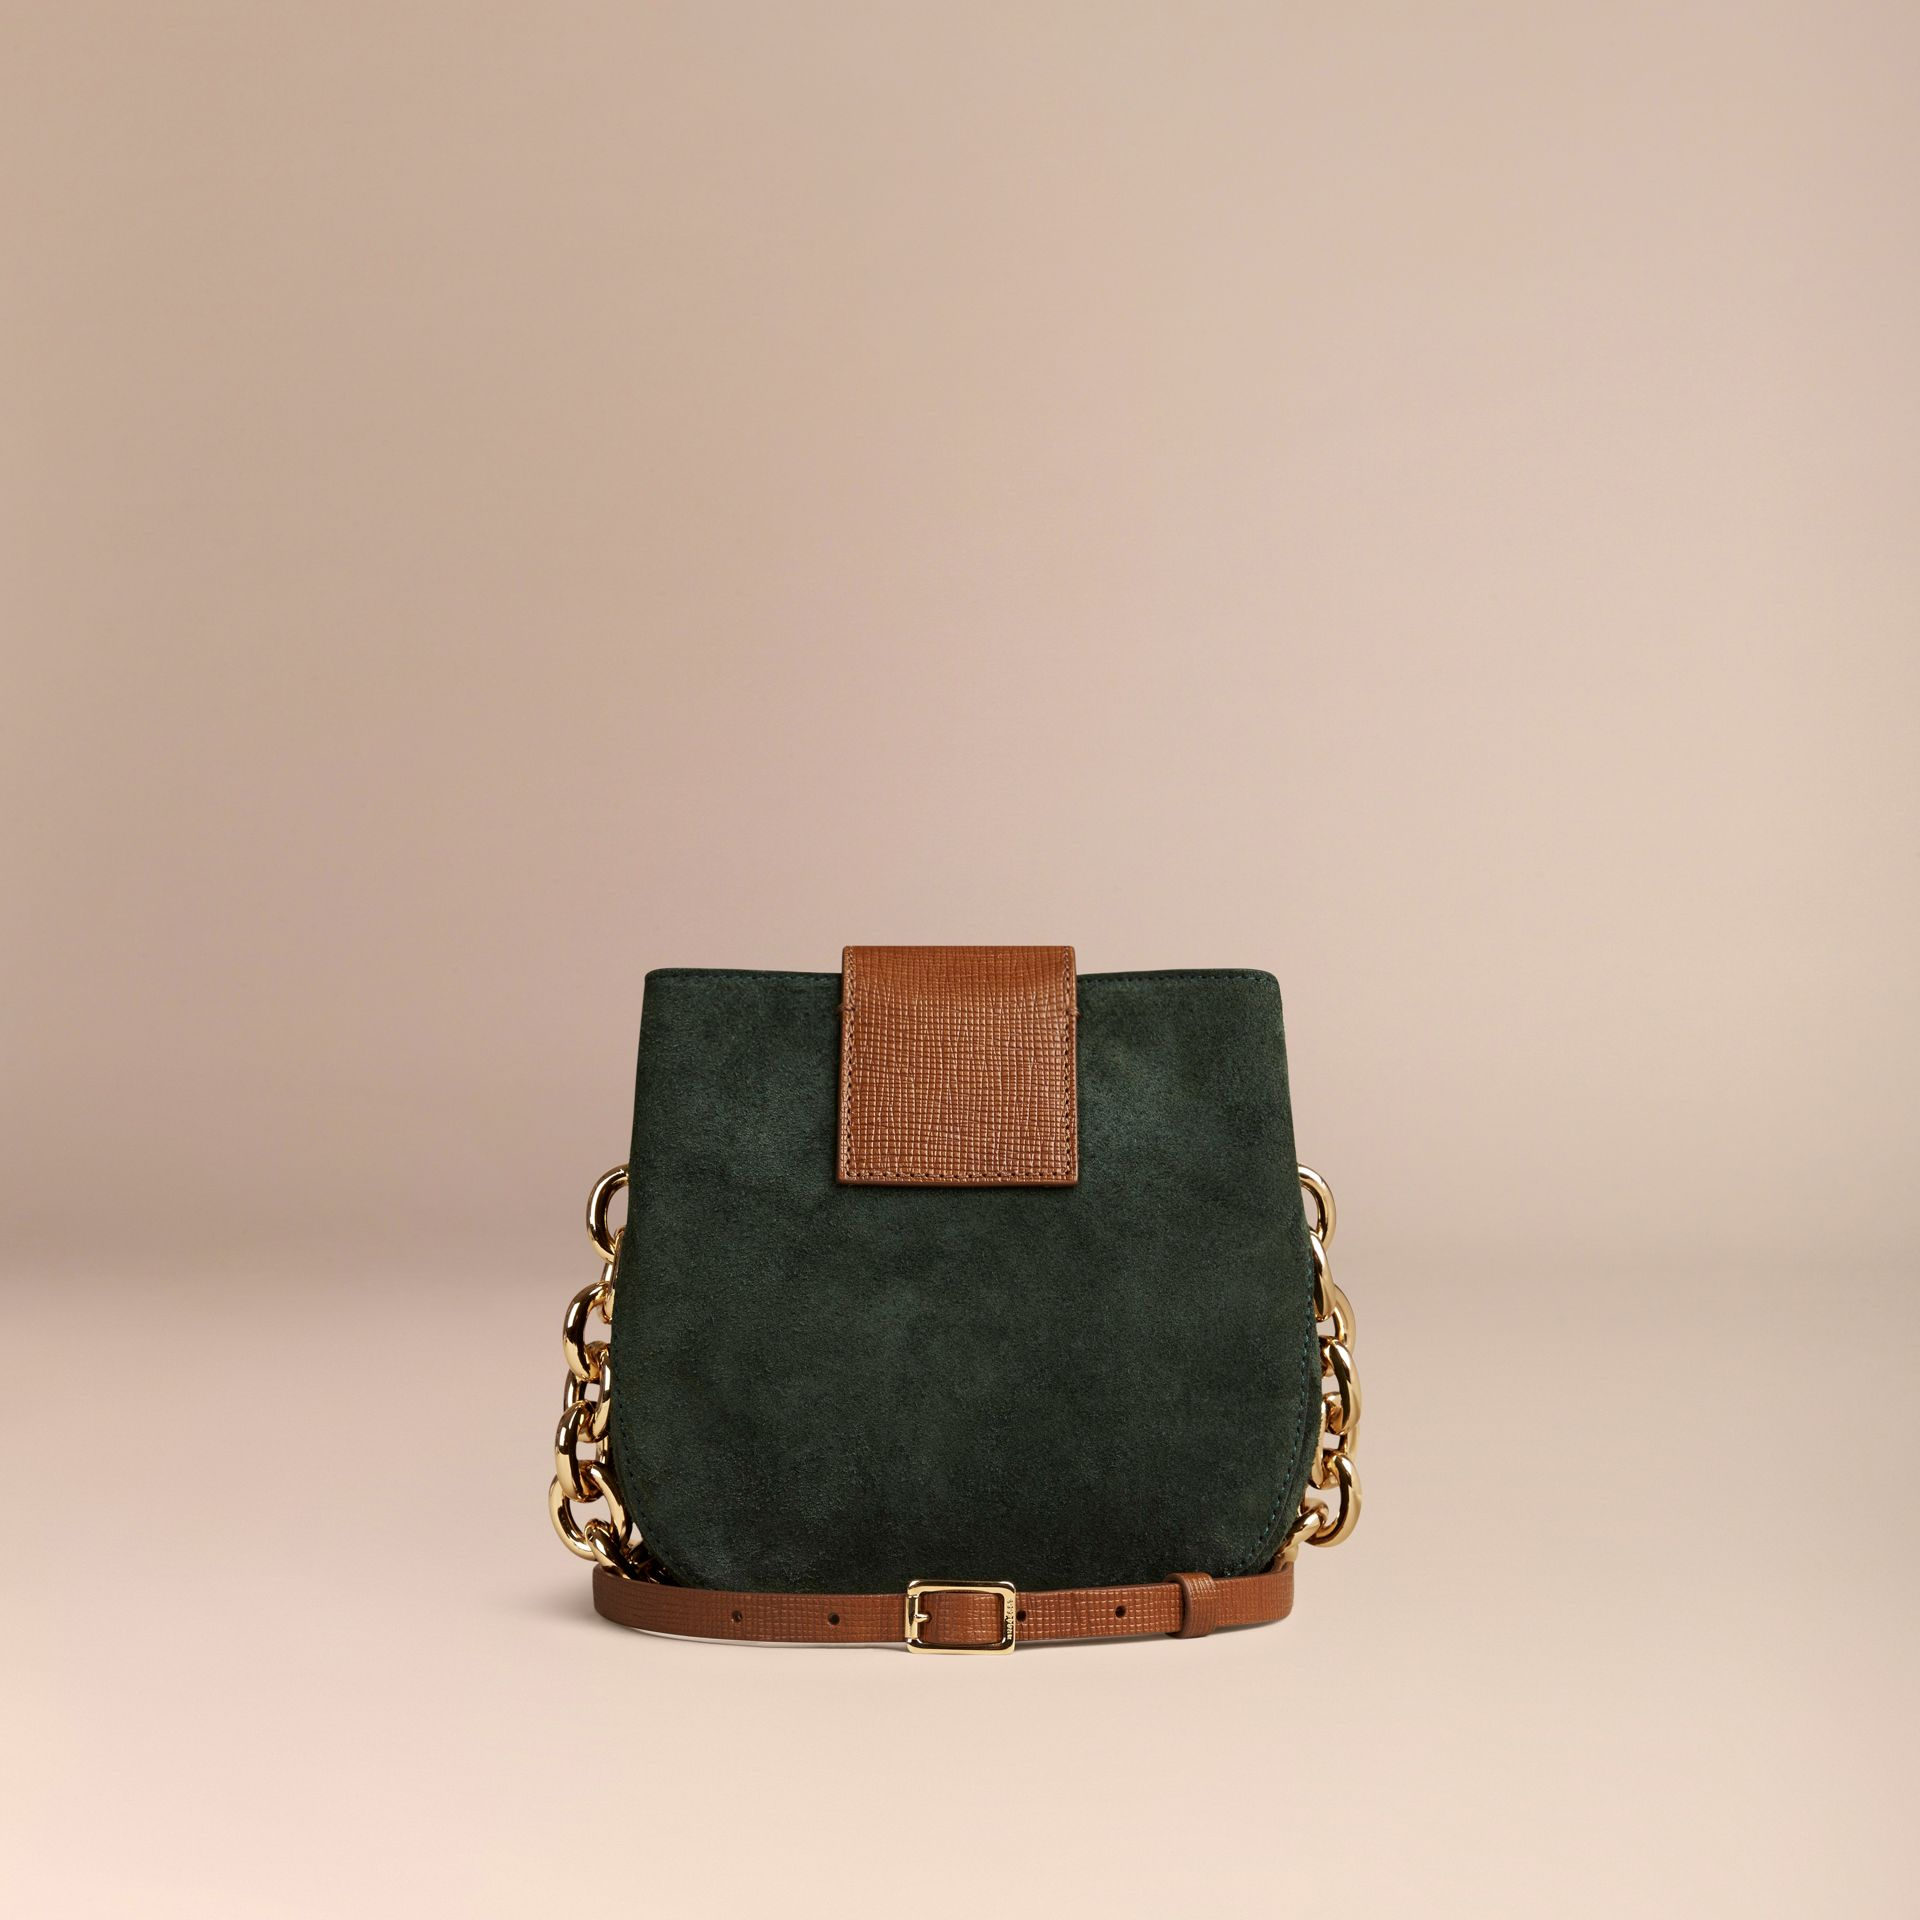 Dark forest green The Small Square Buckle Bag in Suede and Leather Dark Forest Green - gallery image 4